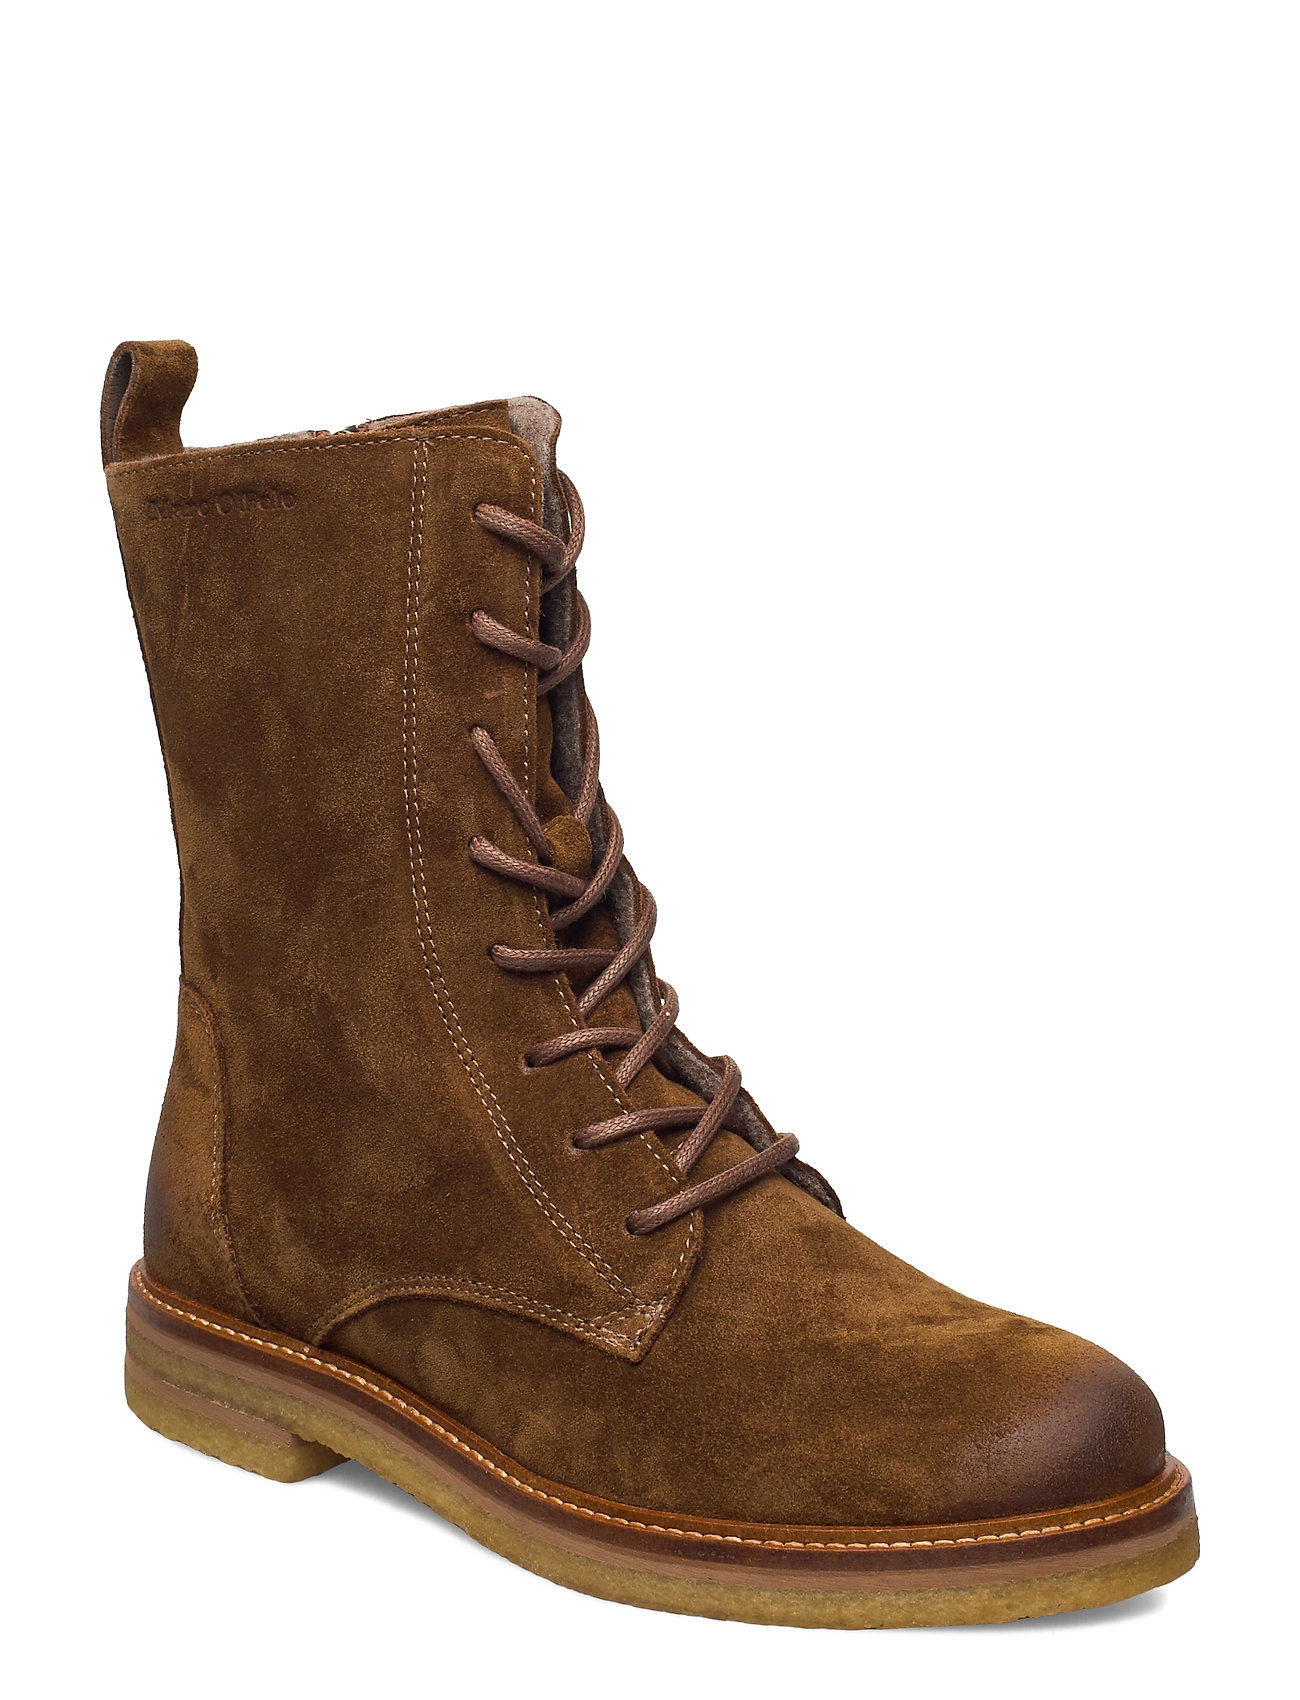 Image of Brenda 1a Shoes Boots Ankle Boots Ankle Boot - Flat Brun Marc O'Polo Footwear (3456993755)